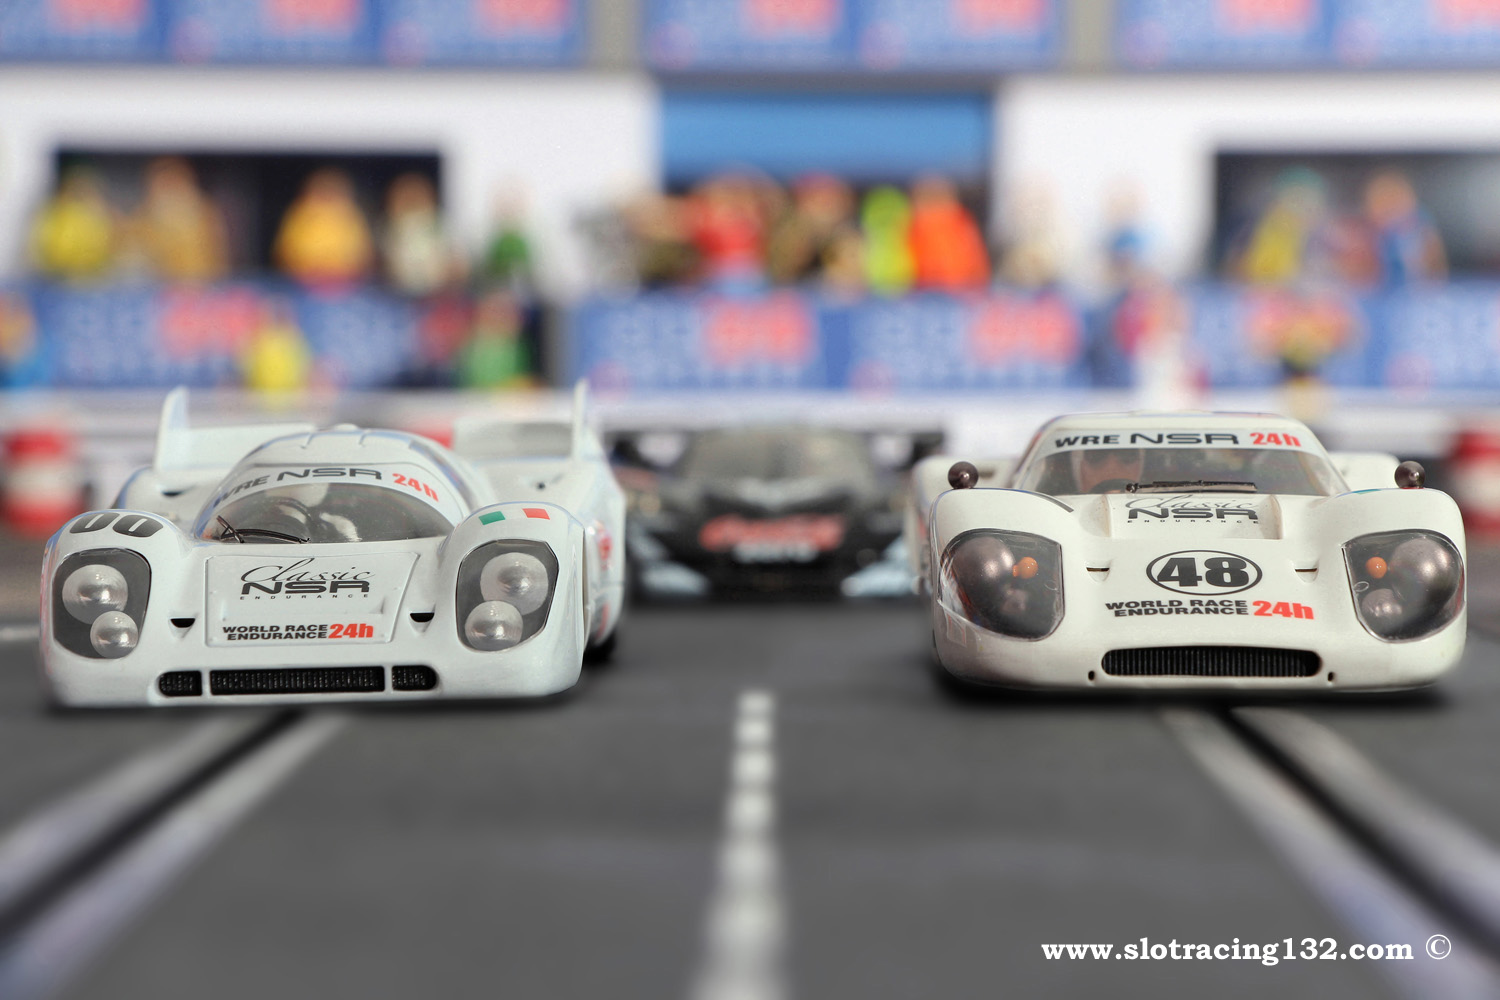 Slotcars 1 32 Slotracing Carrera Racecourse News Brand